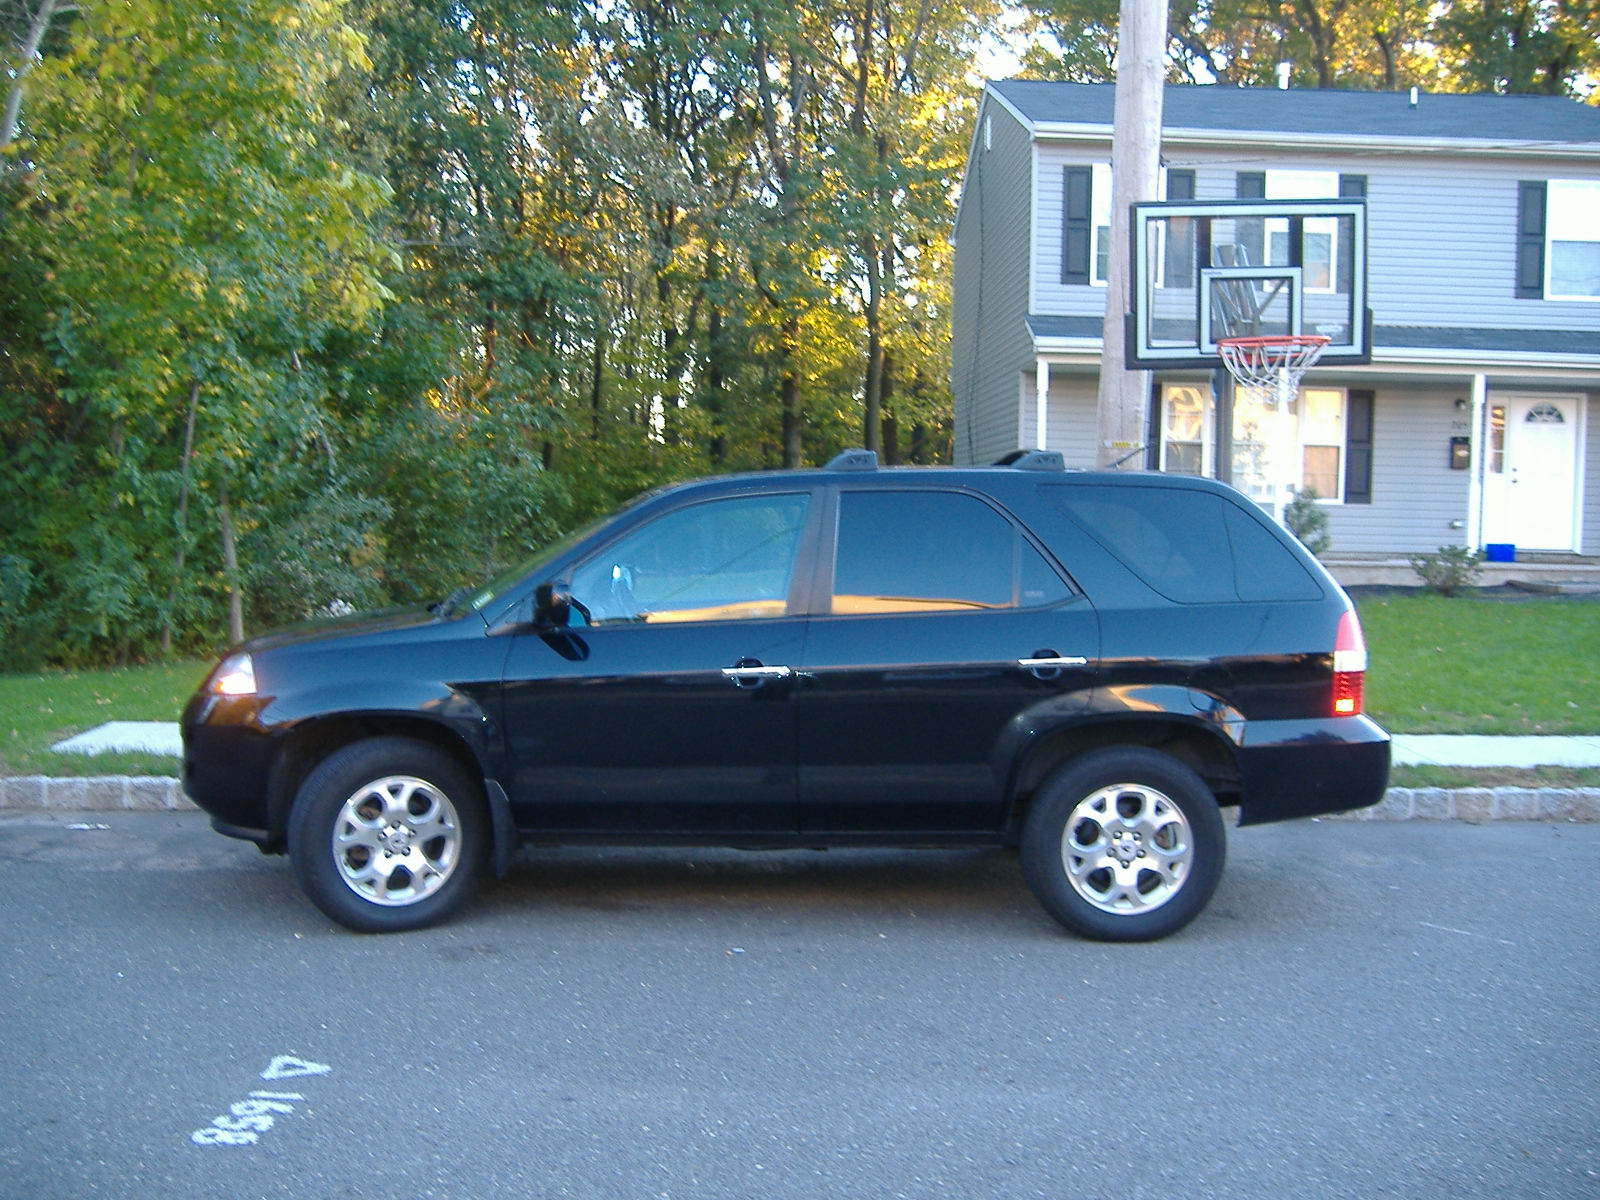 2002 Acura Mdx Information And Photos Zombiedrive Wiring Diagram 9